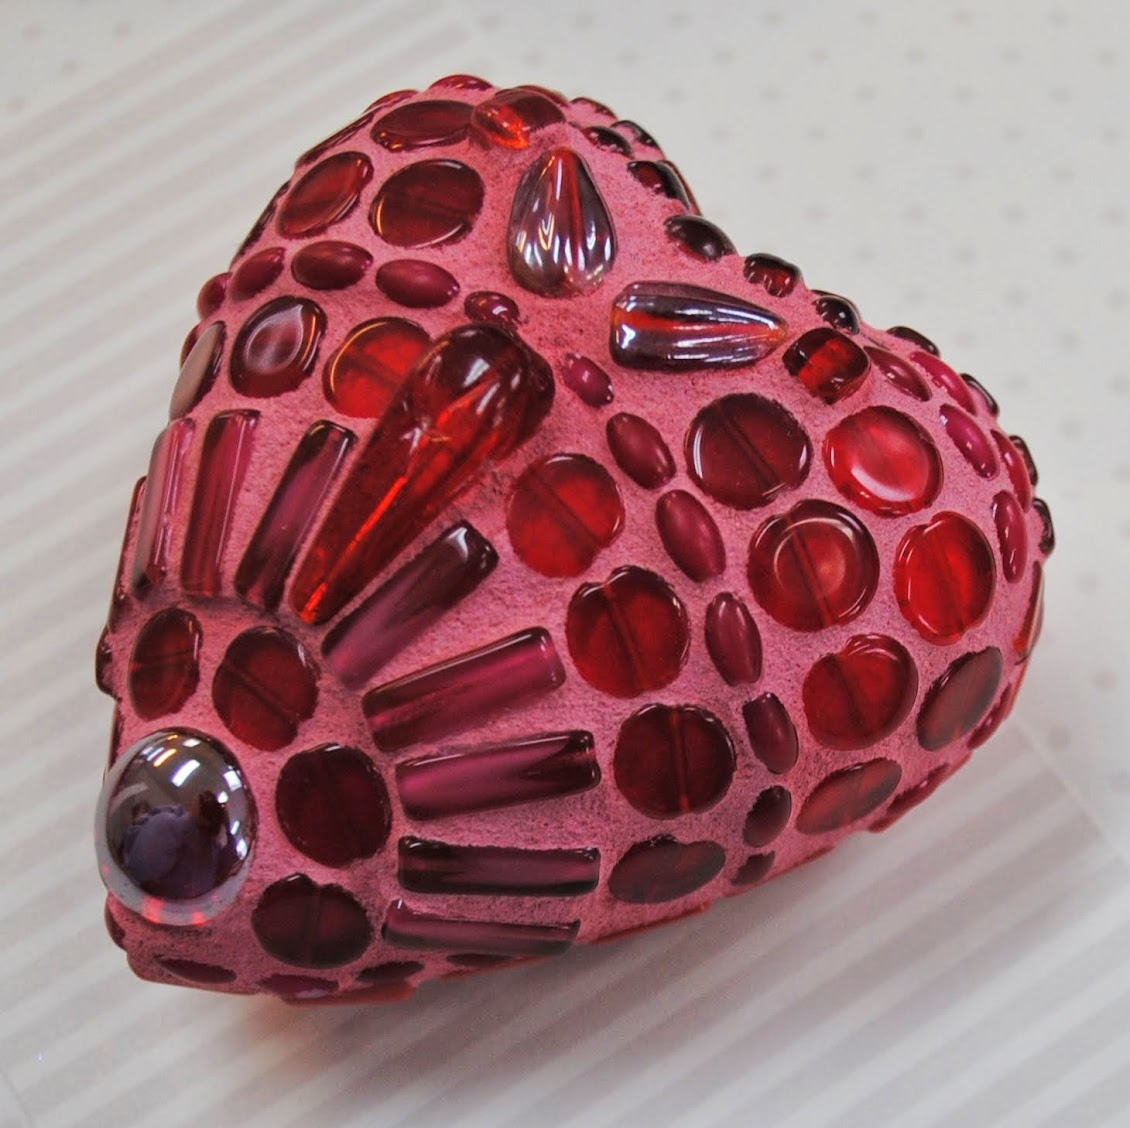 Ruby Red Mosaic Heart Moo5086 Beads Amp Pieces